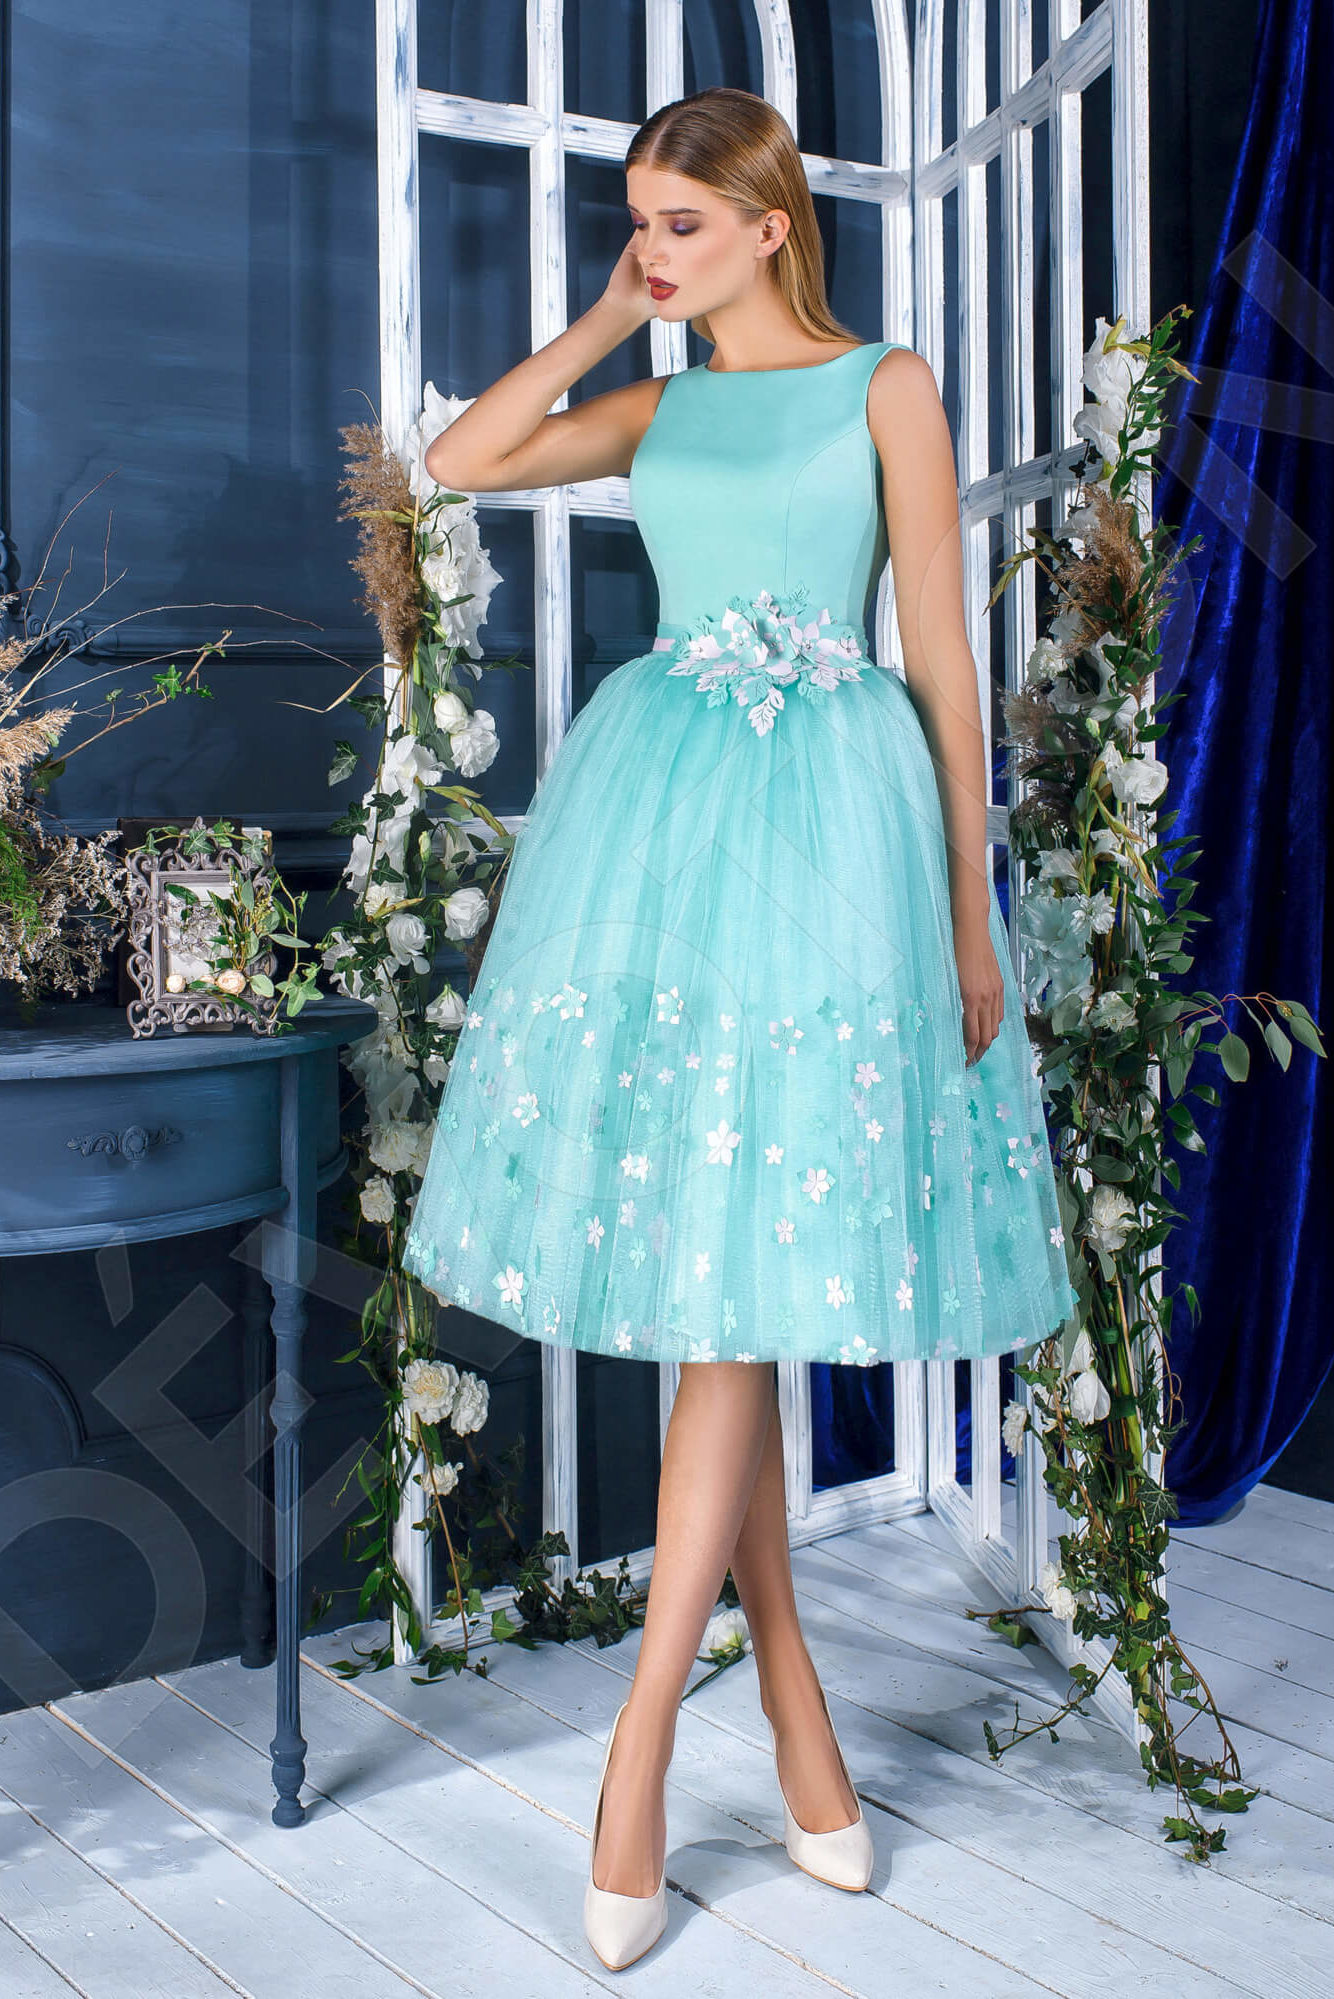 how to choose a perfect bridemaid dress